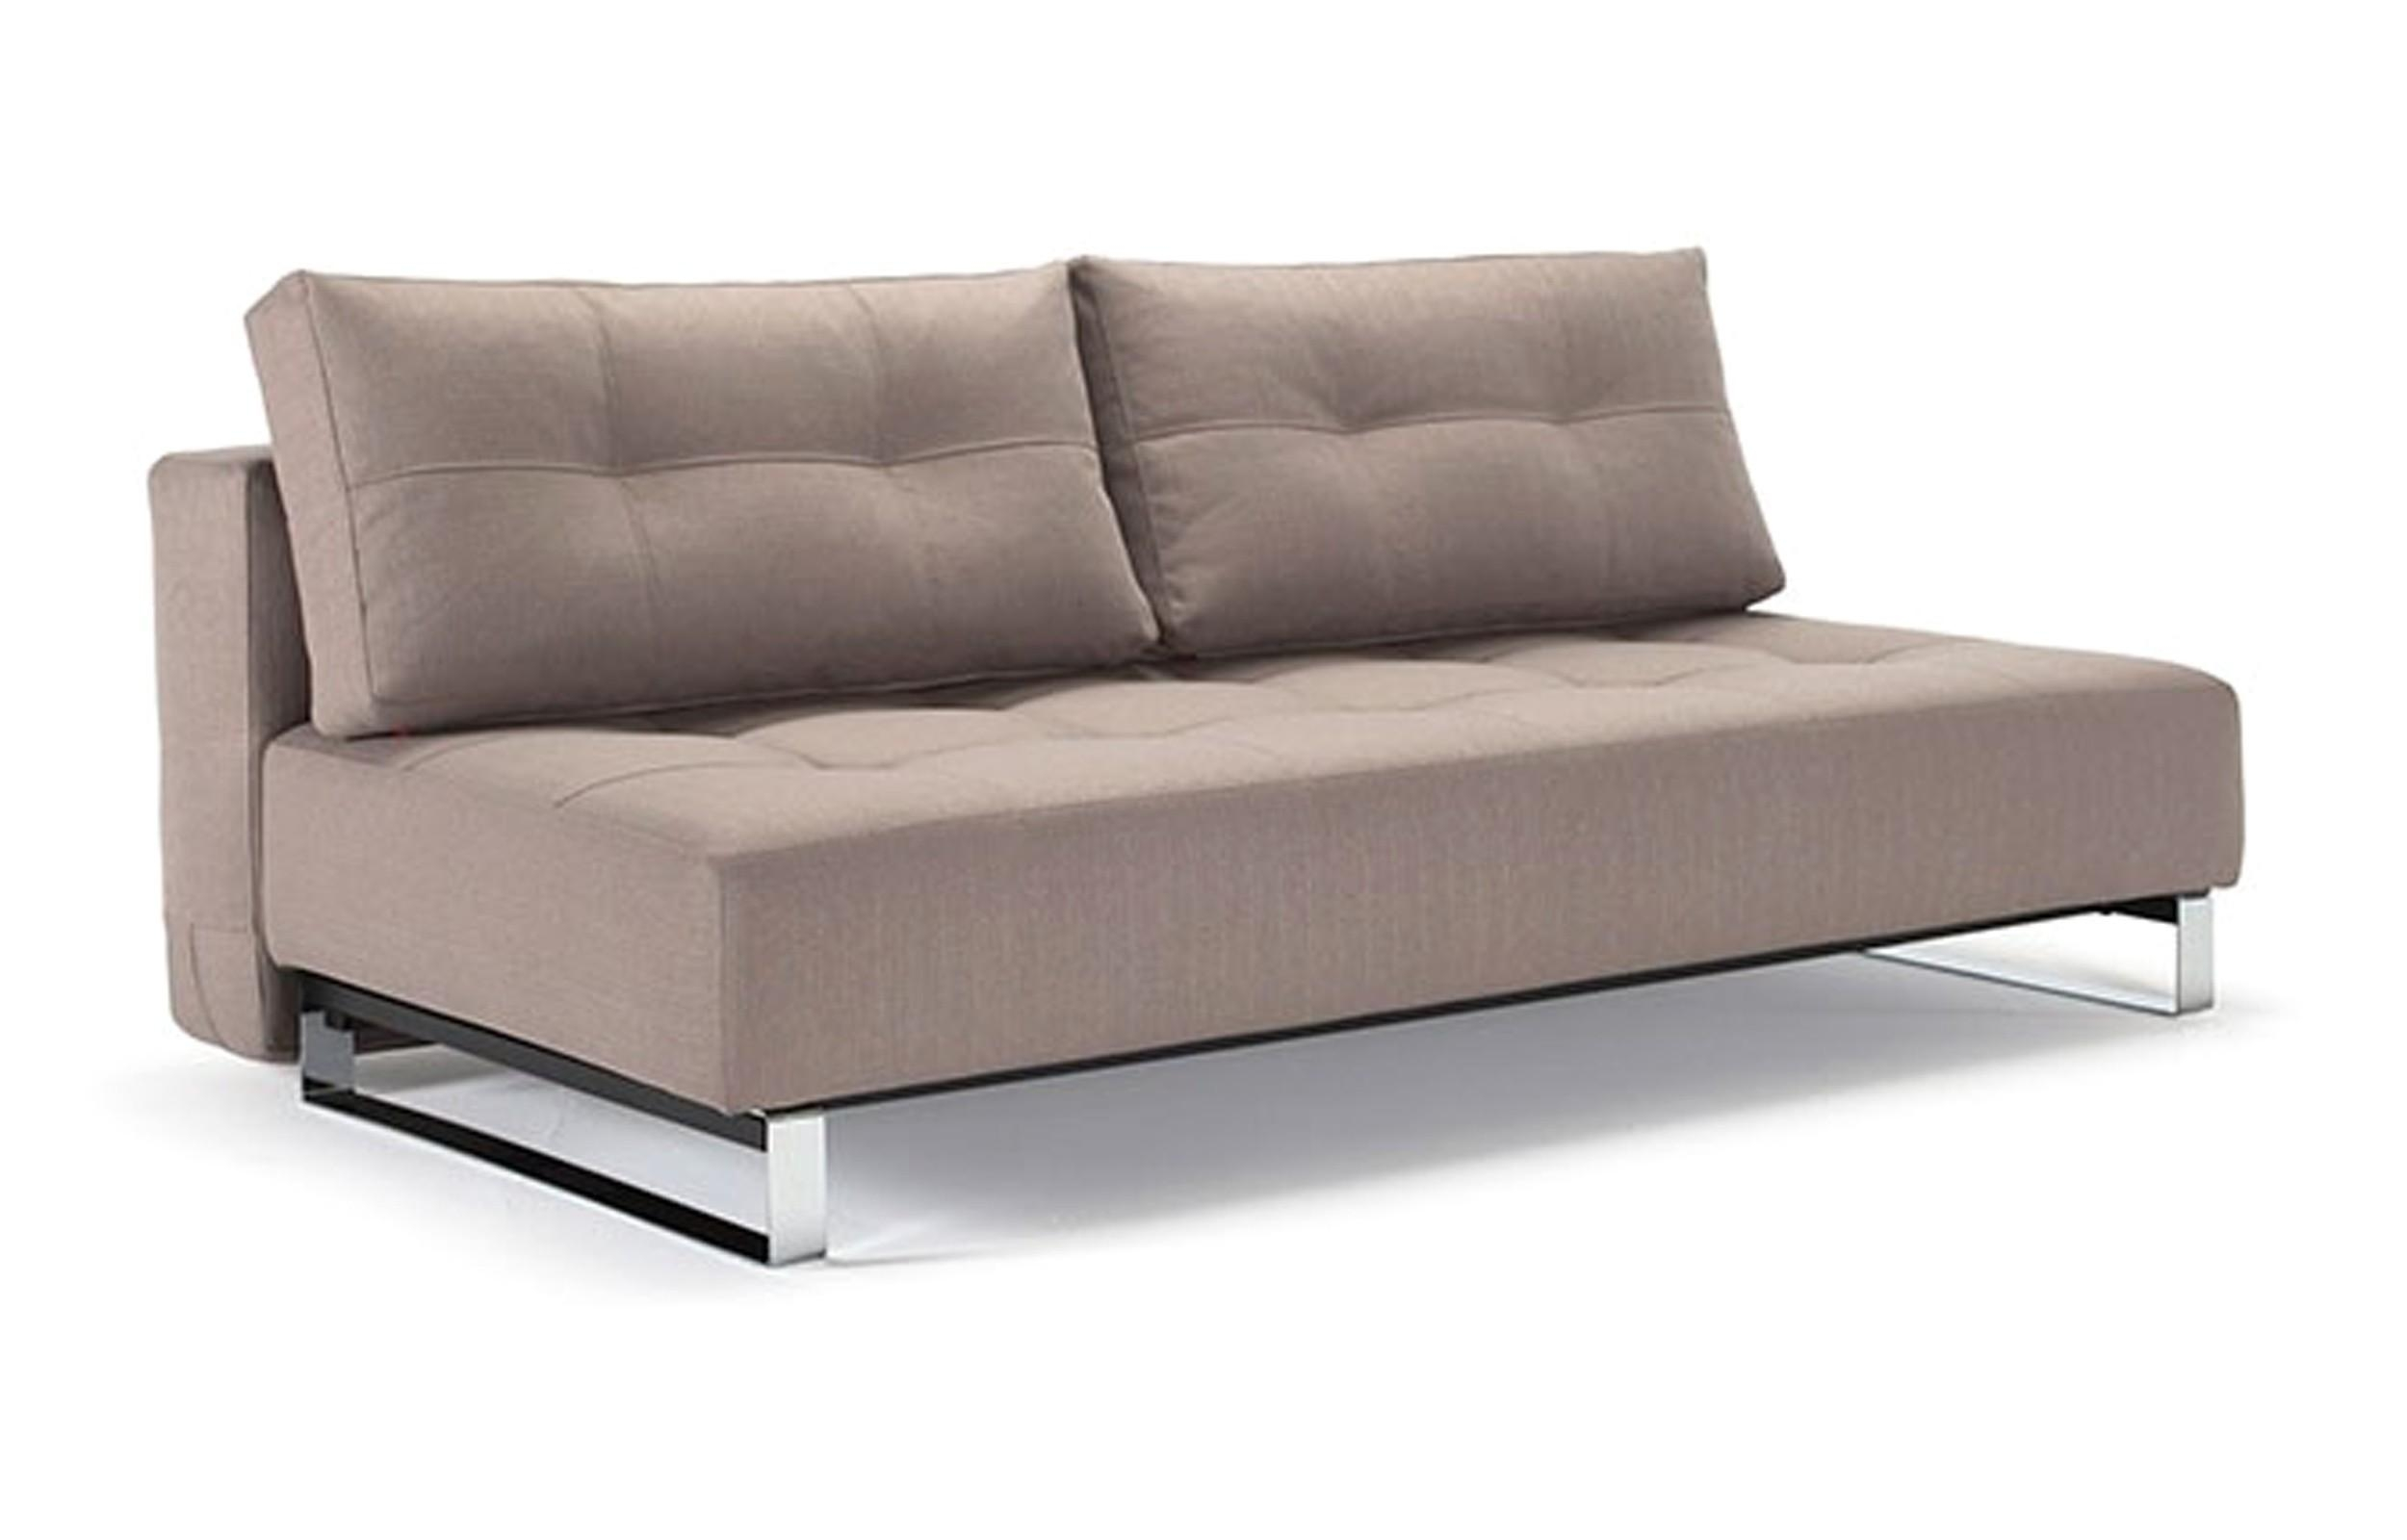 Supremax Deluxe Excess Lounger Sofa Bed | Viesso For Sofa Lounger Beds (Image 19 of 20)